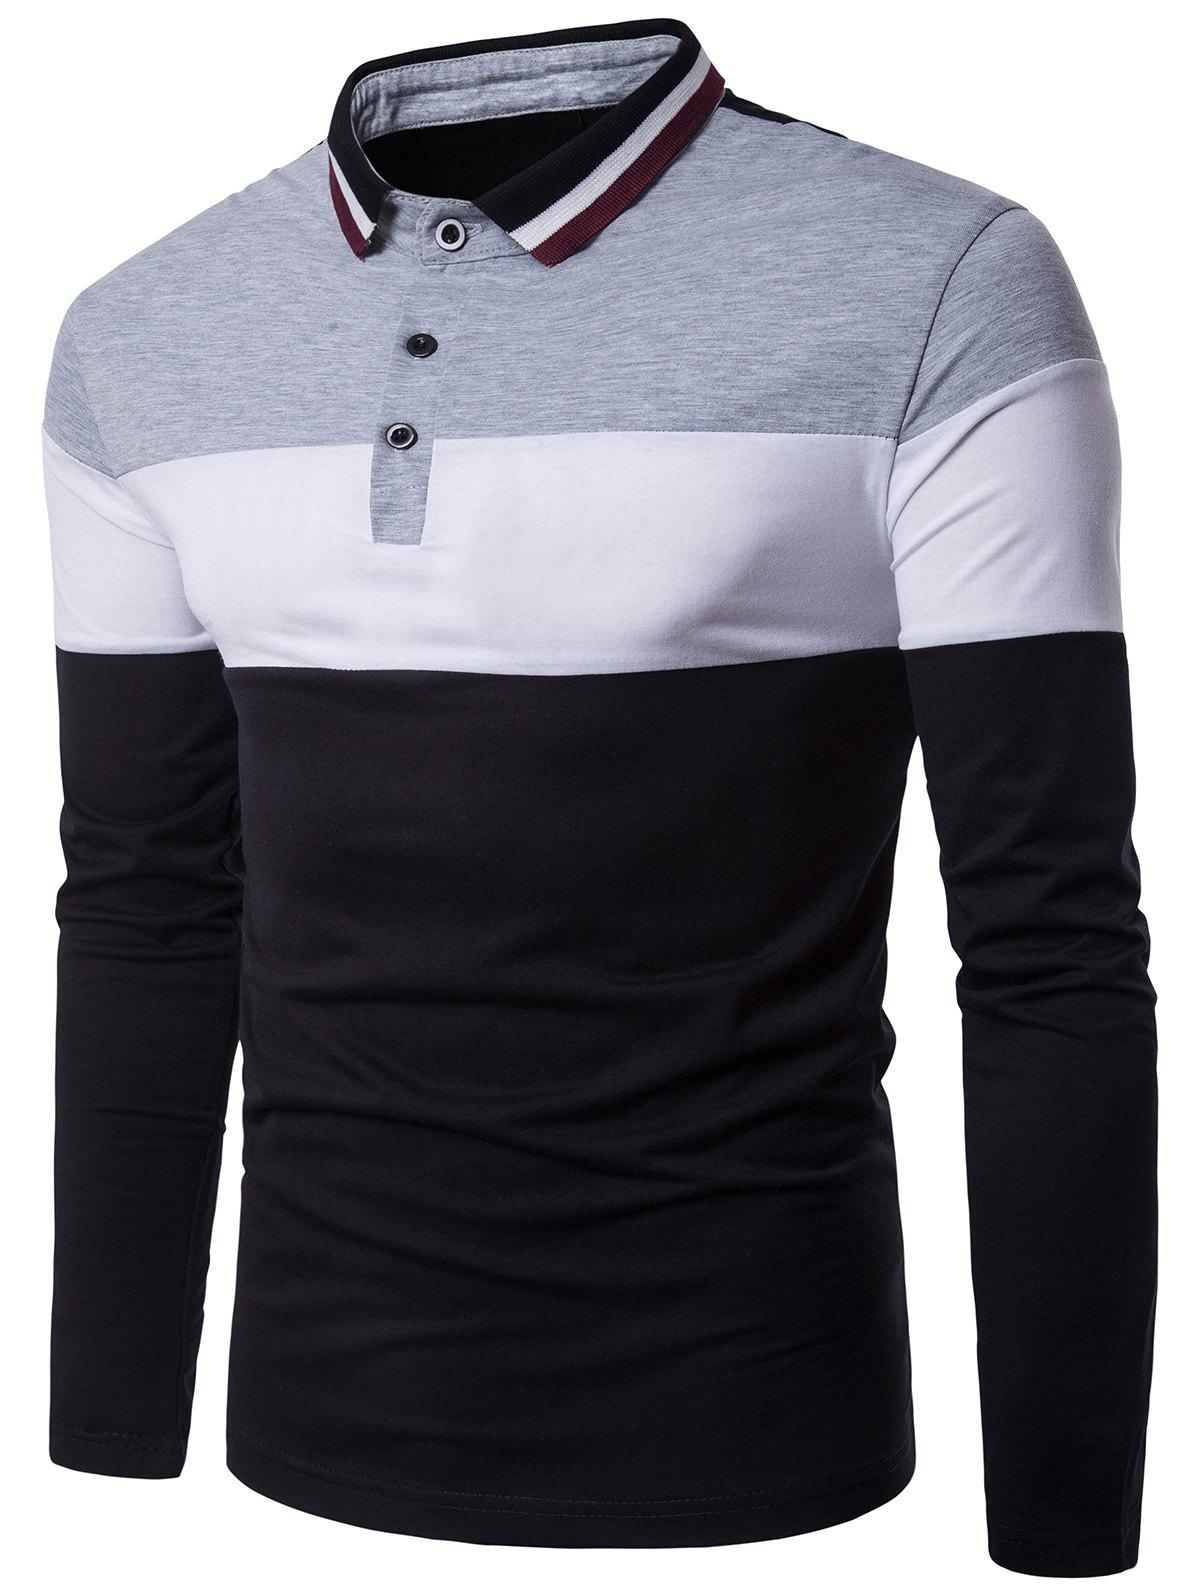 Color Block Panel Design Rib Polo Collar T-shirtMEN<br><br>Size: 2XL; Color: GRAY; Material: Cotton,Polyester; Sleeve Length: Full; Collar: Polo Collar; Style: Casual,Fashion; Embellishment: Spliced; Pattern Type: Solid; Weight: 0.2600kg; Package Contents: 1 x T-shirt;